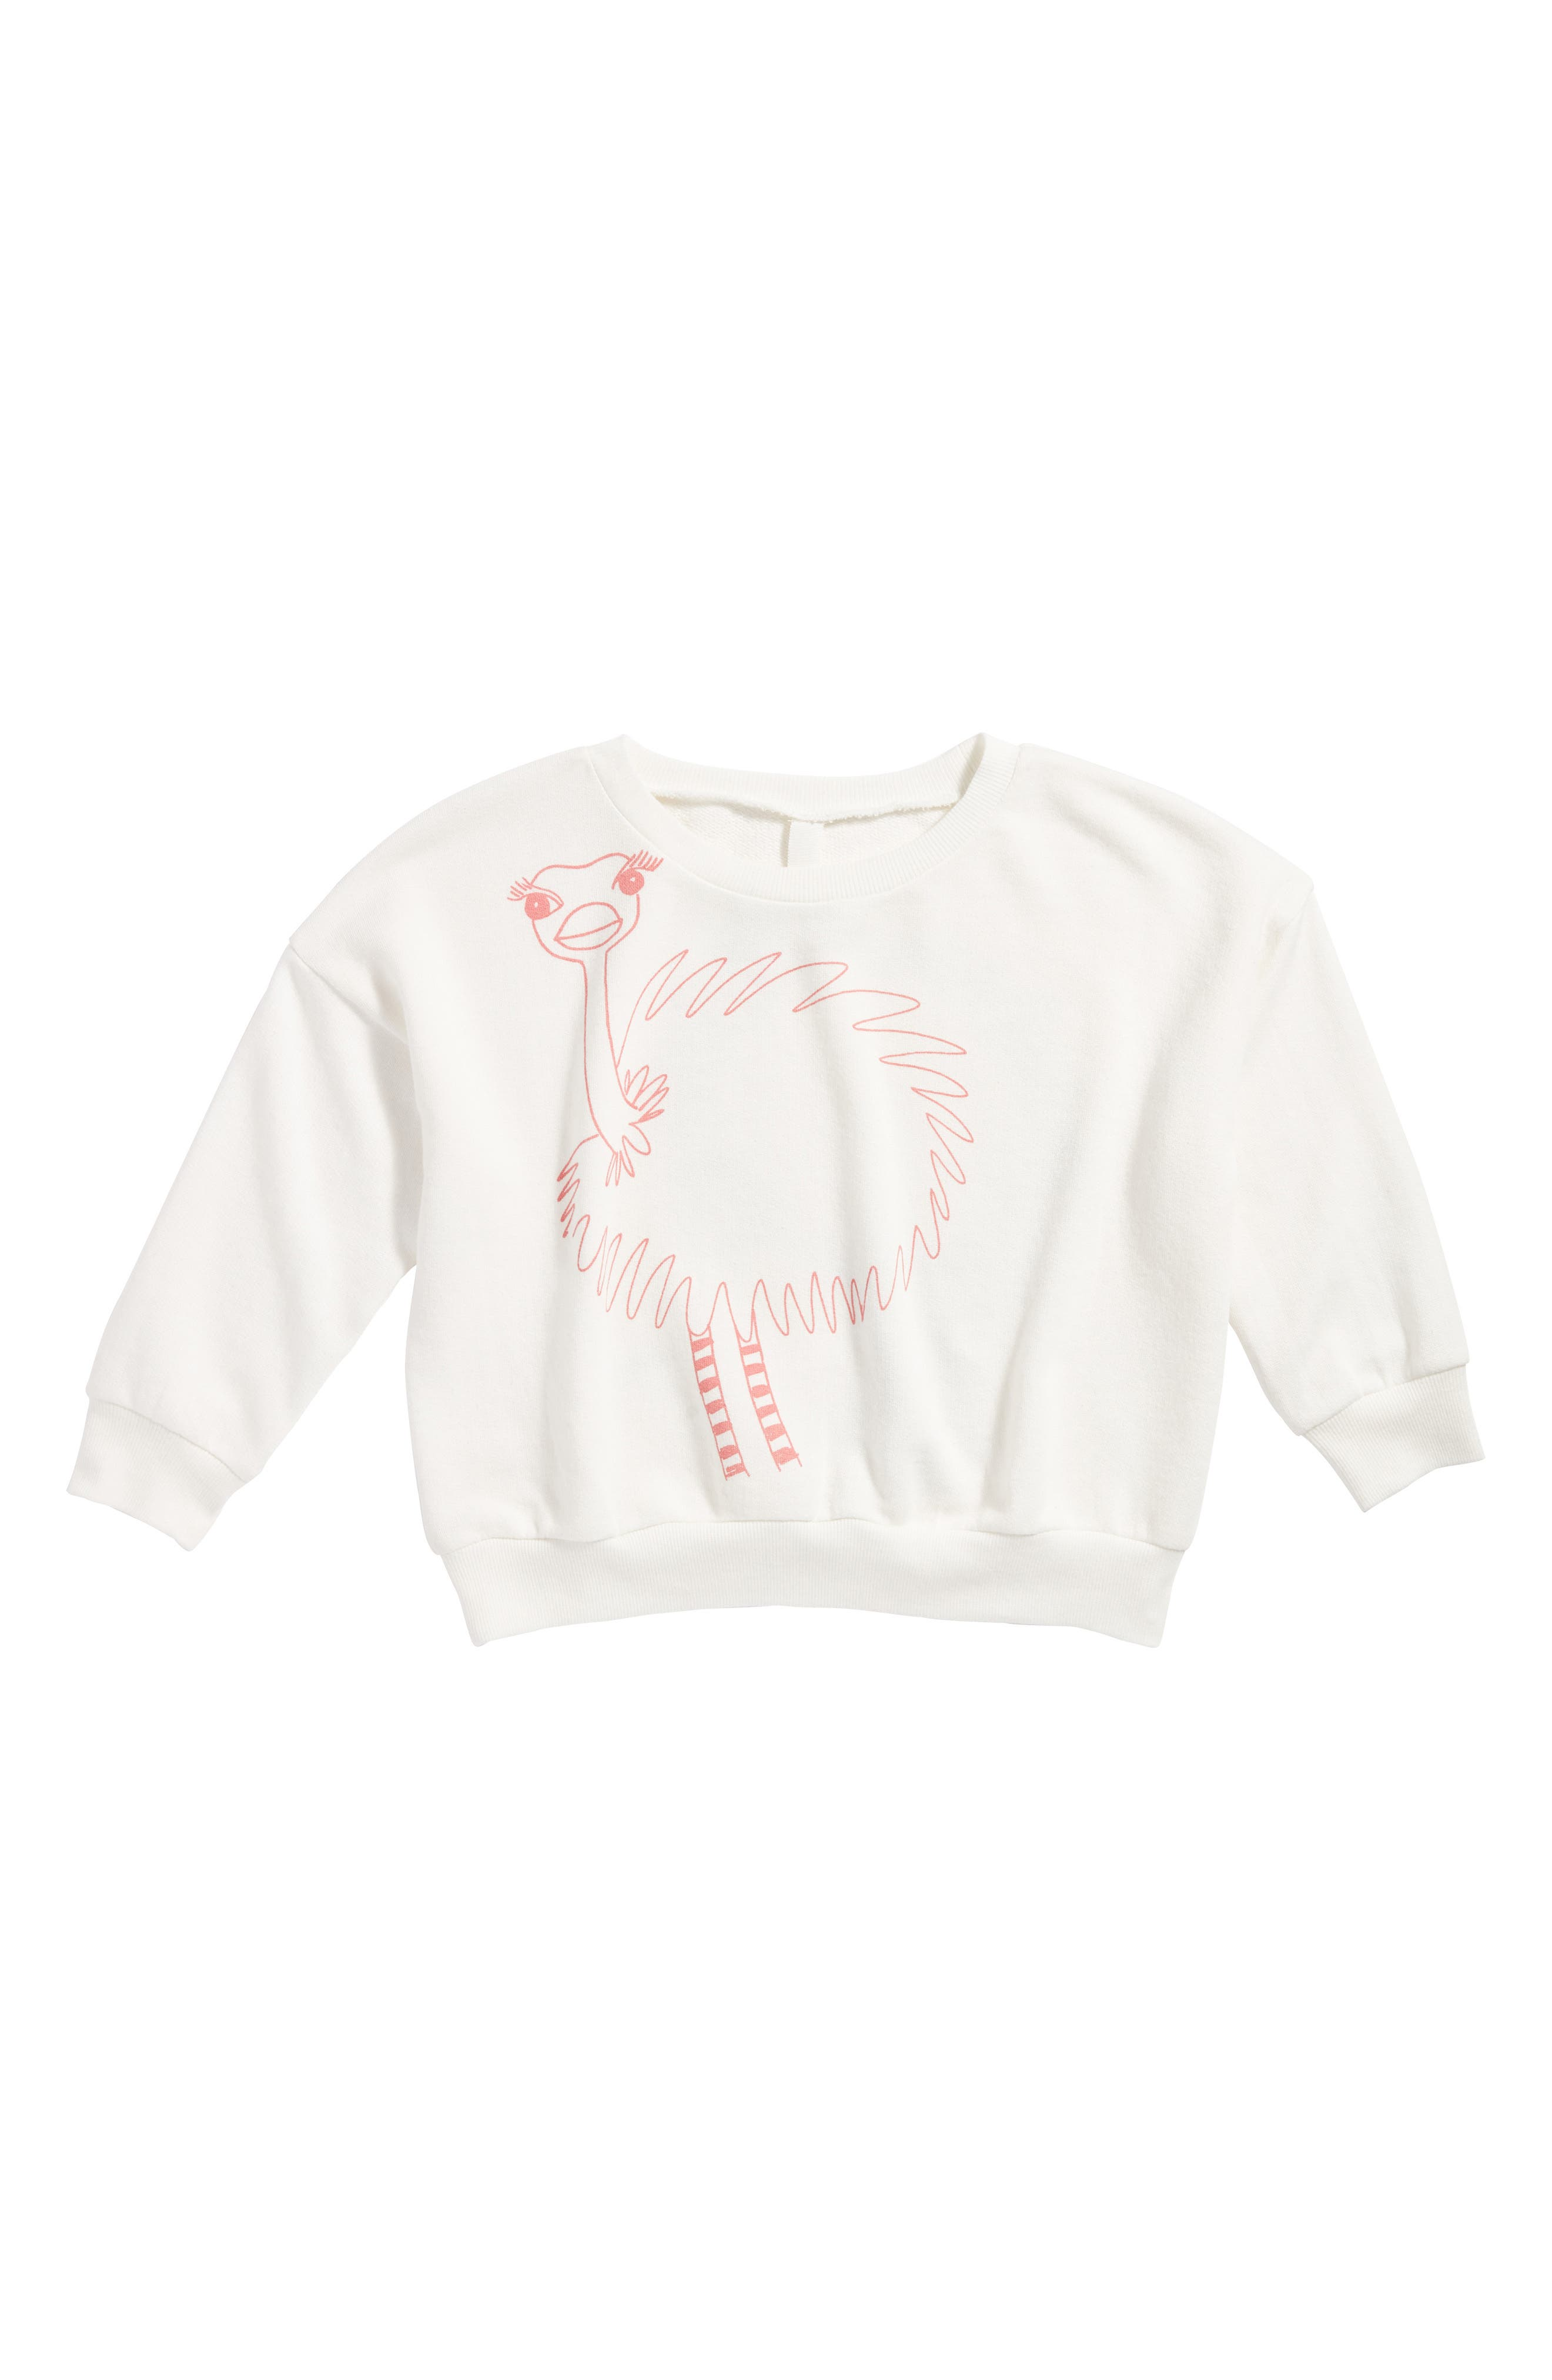 Alternate Image 1 Selected - Stem Ostrich Graphic Sweatshirt (Toddler Girls, Little Girls & Big Girls)